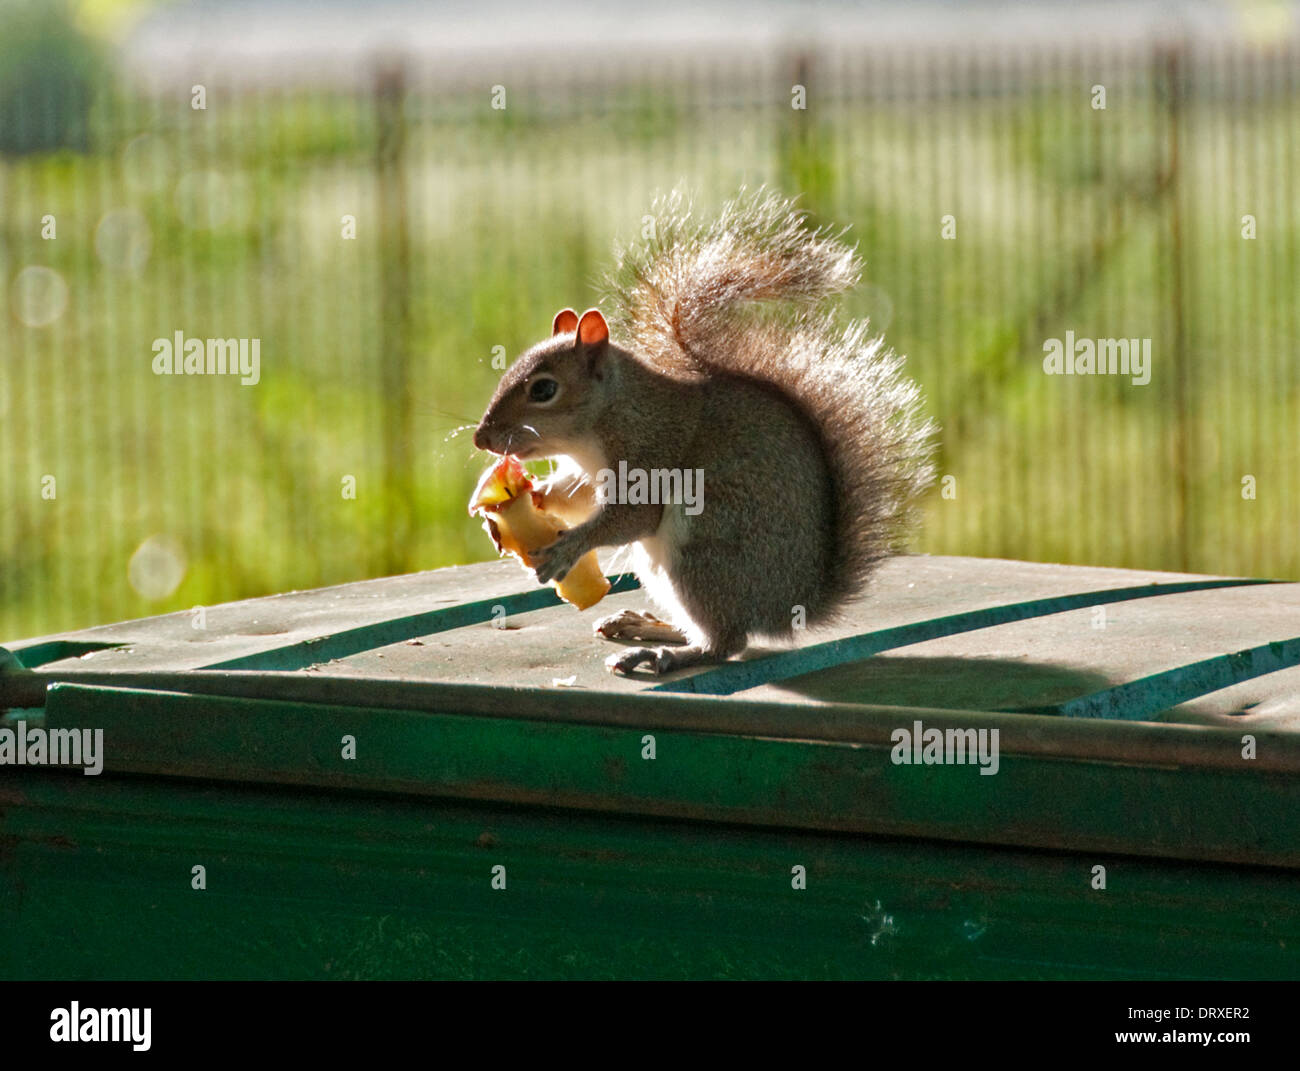 Grey squirrel feeding on apple core - Stock Image